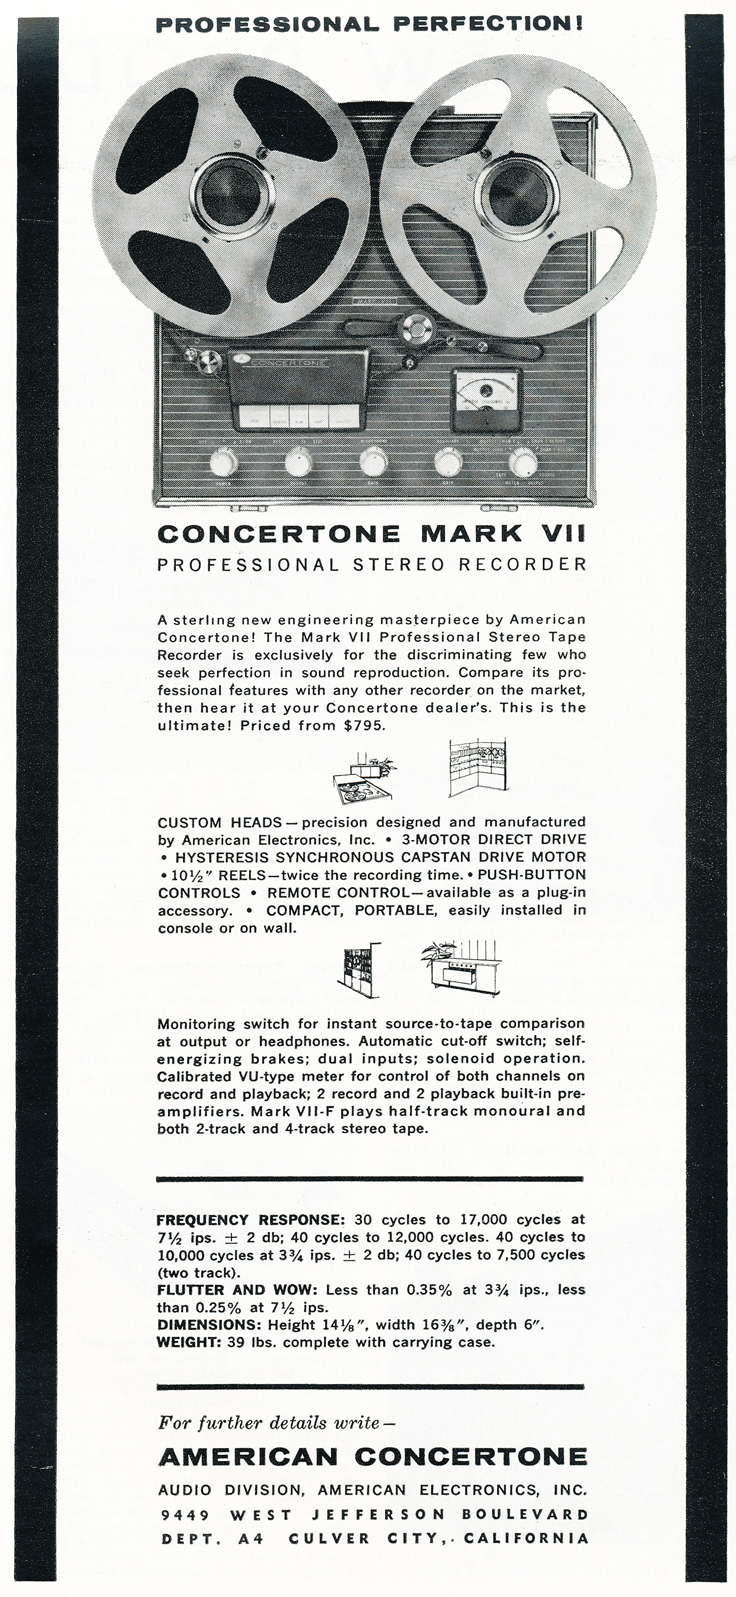 1959 ad for Concertone reel to reel tape recorders in the Reel2ReelTexas.com vintage recording collection